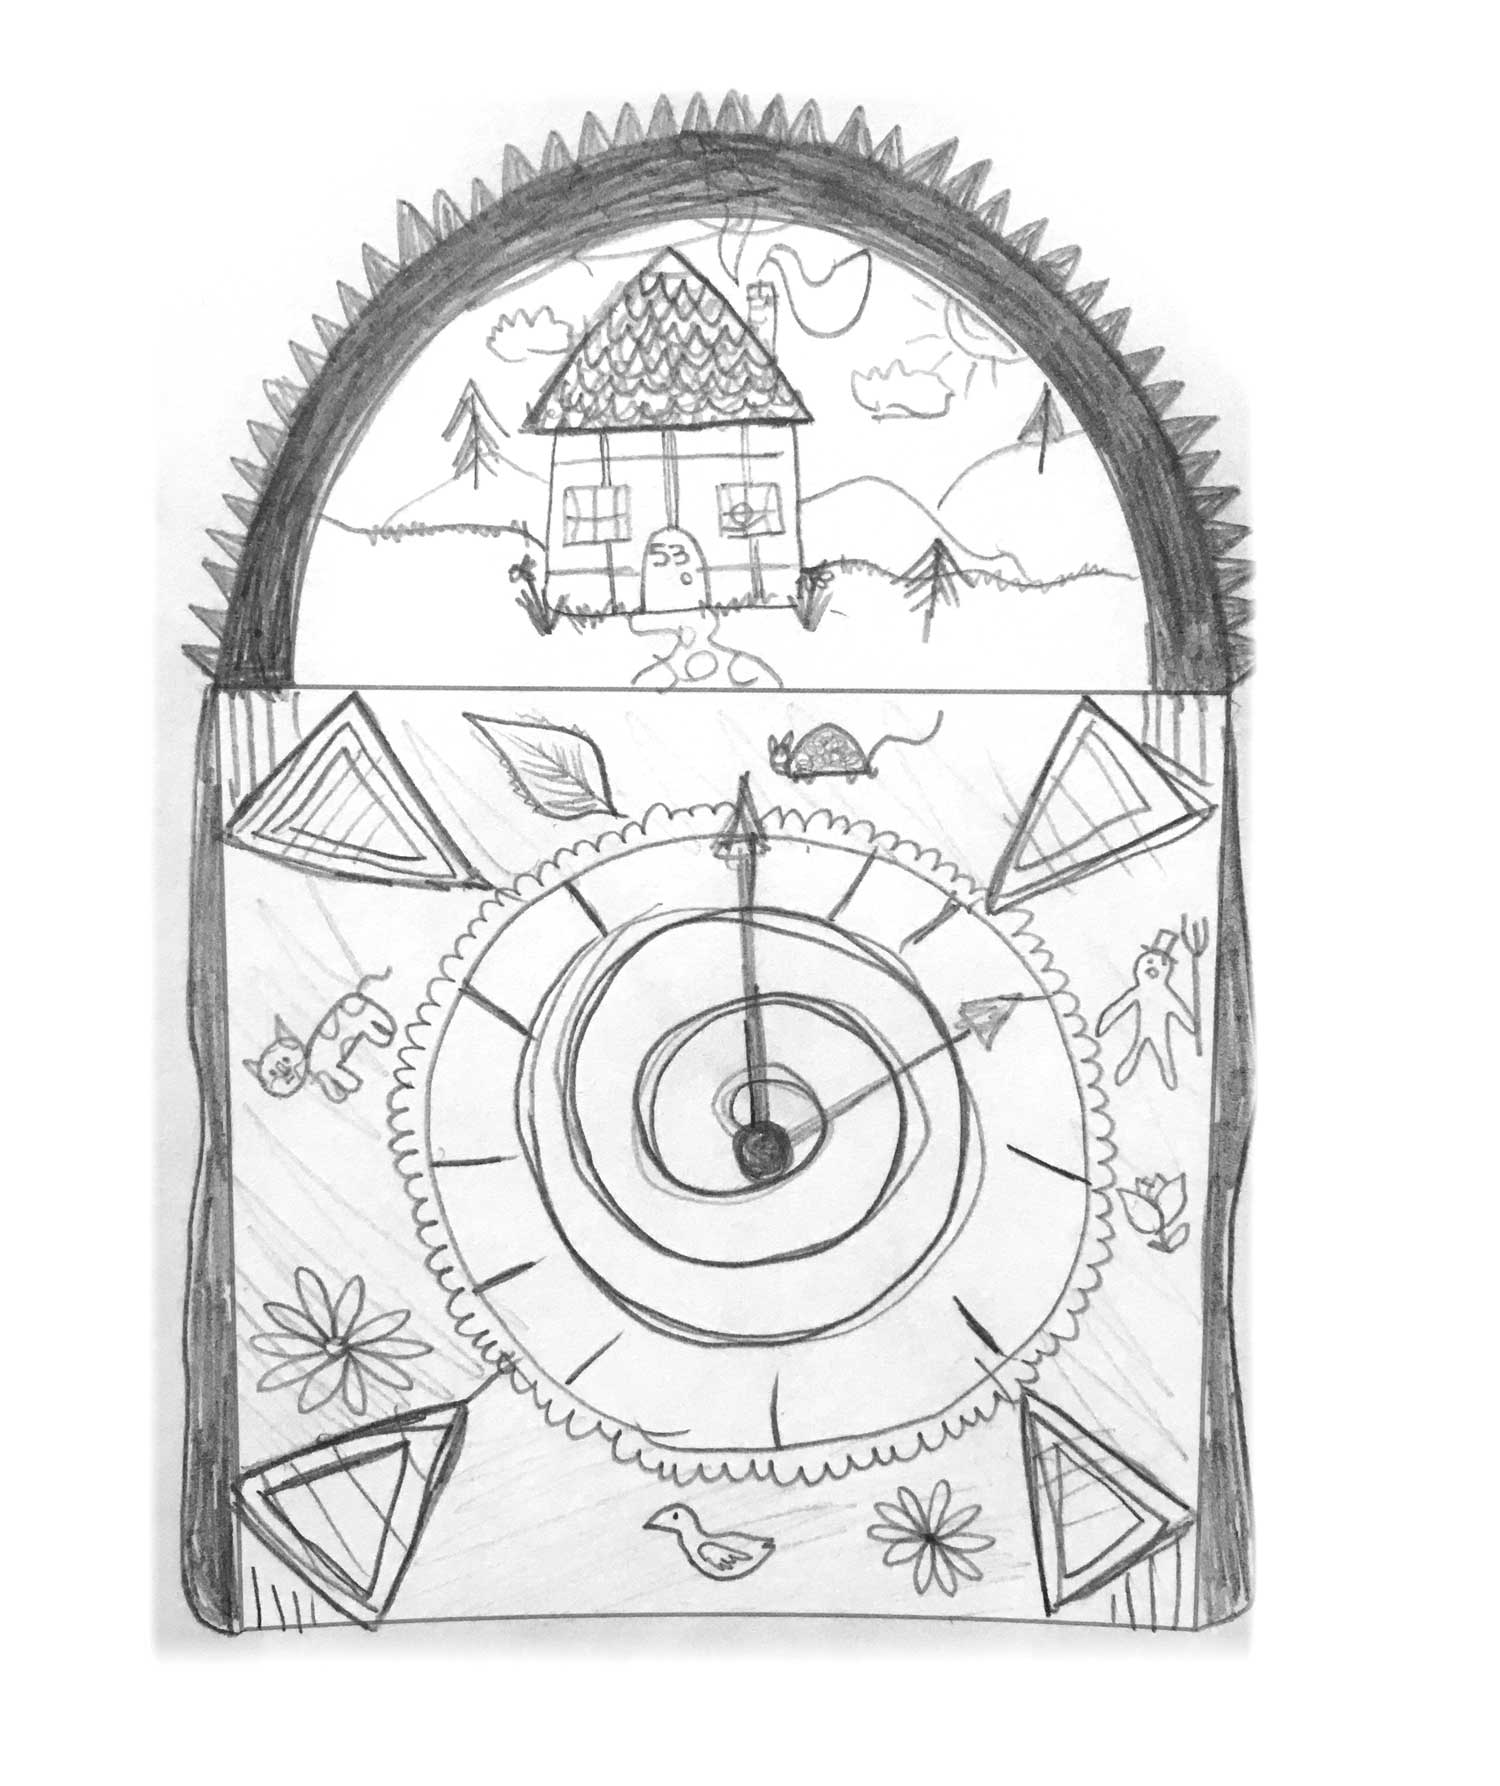 kroeger-clock-exhibition-visitor-drawing-1.jpg